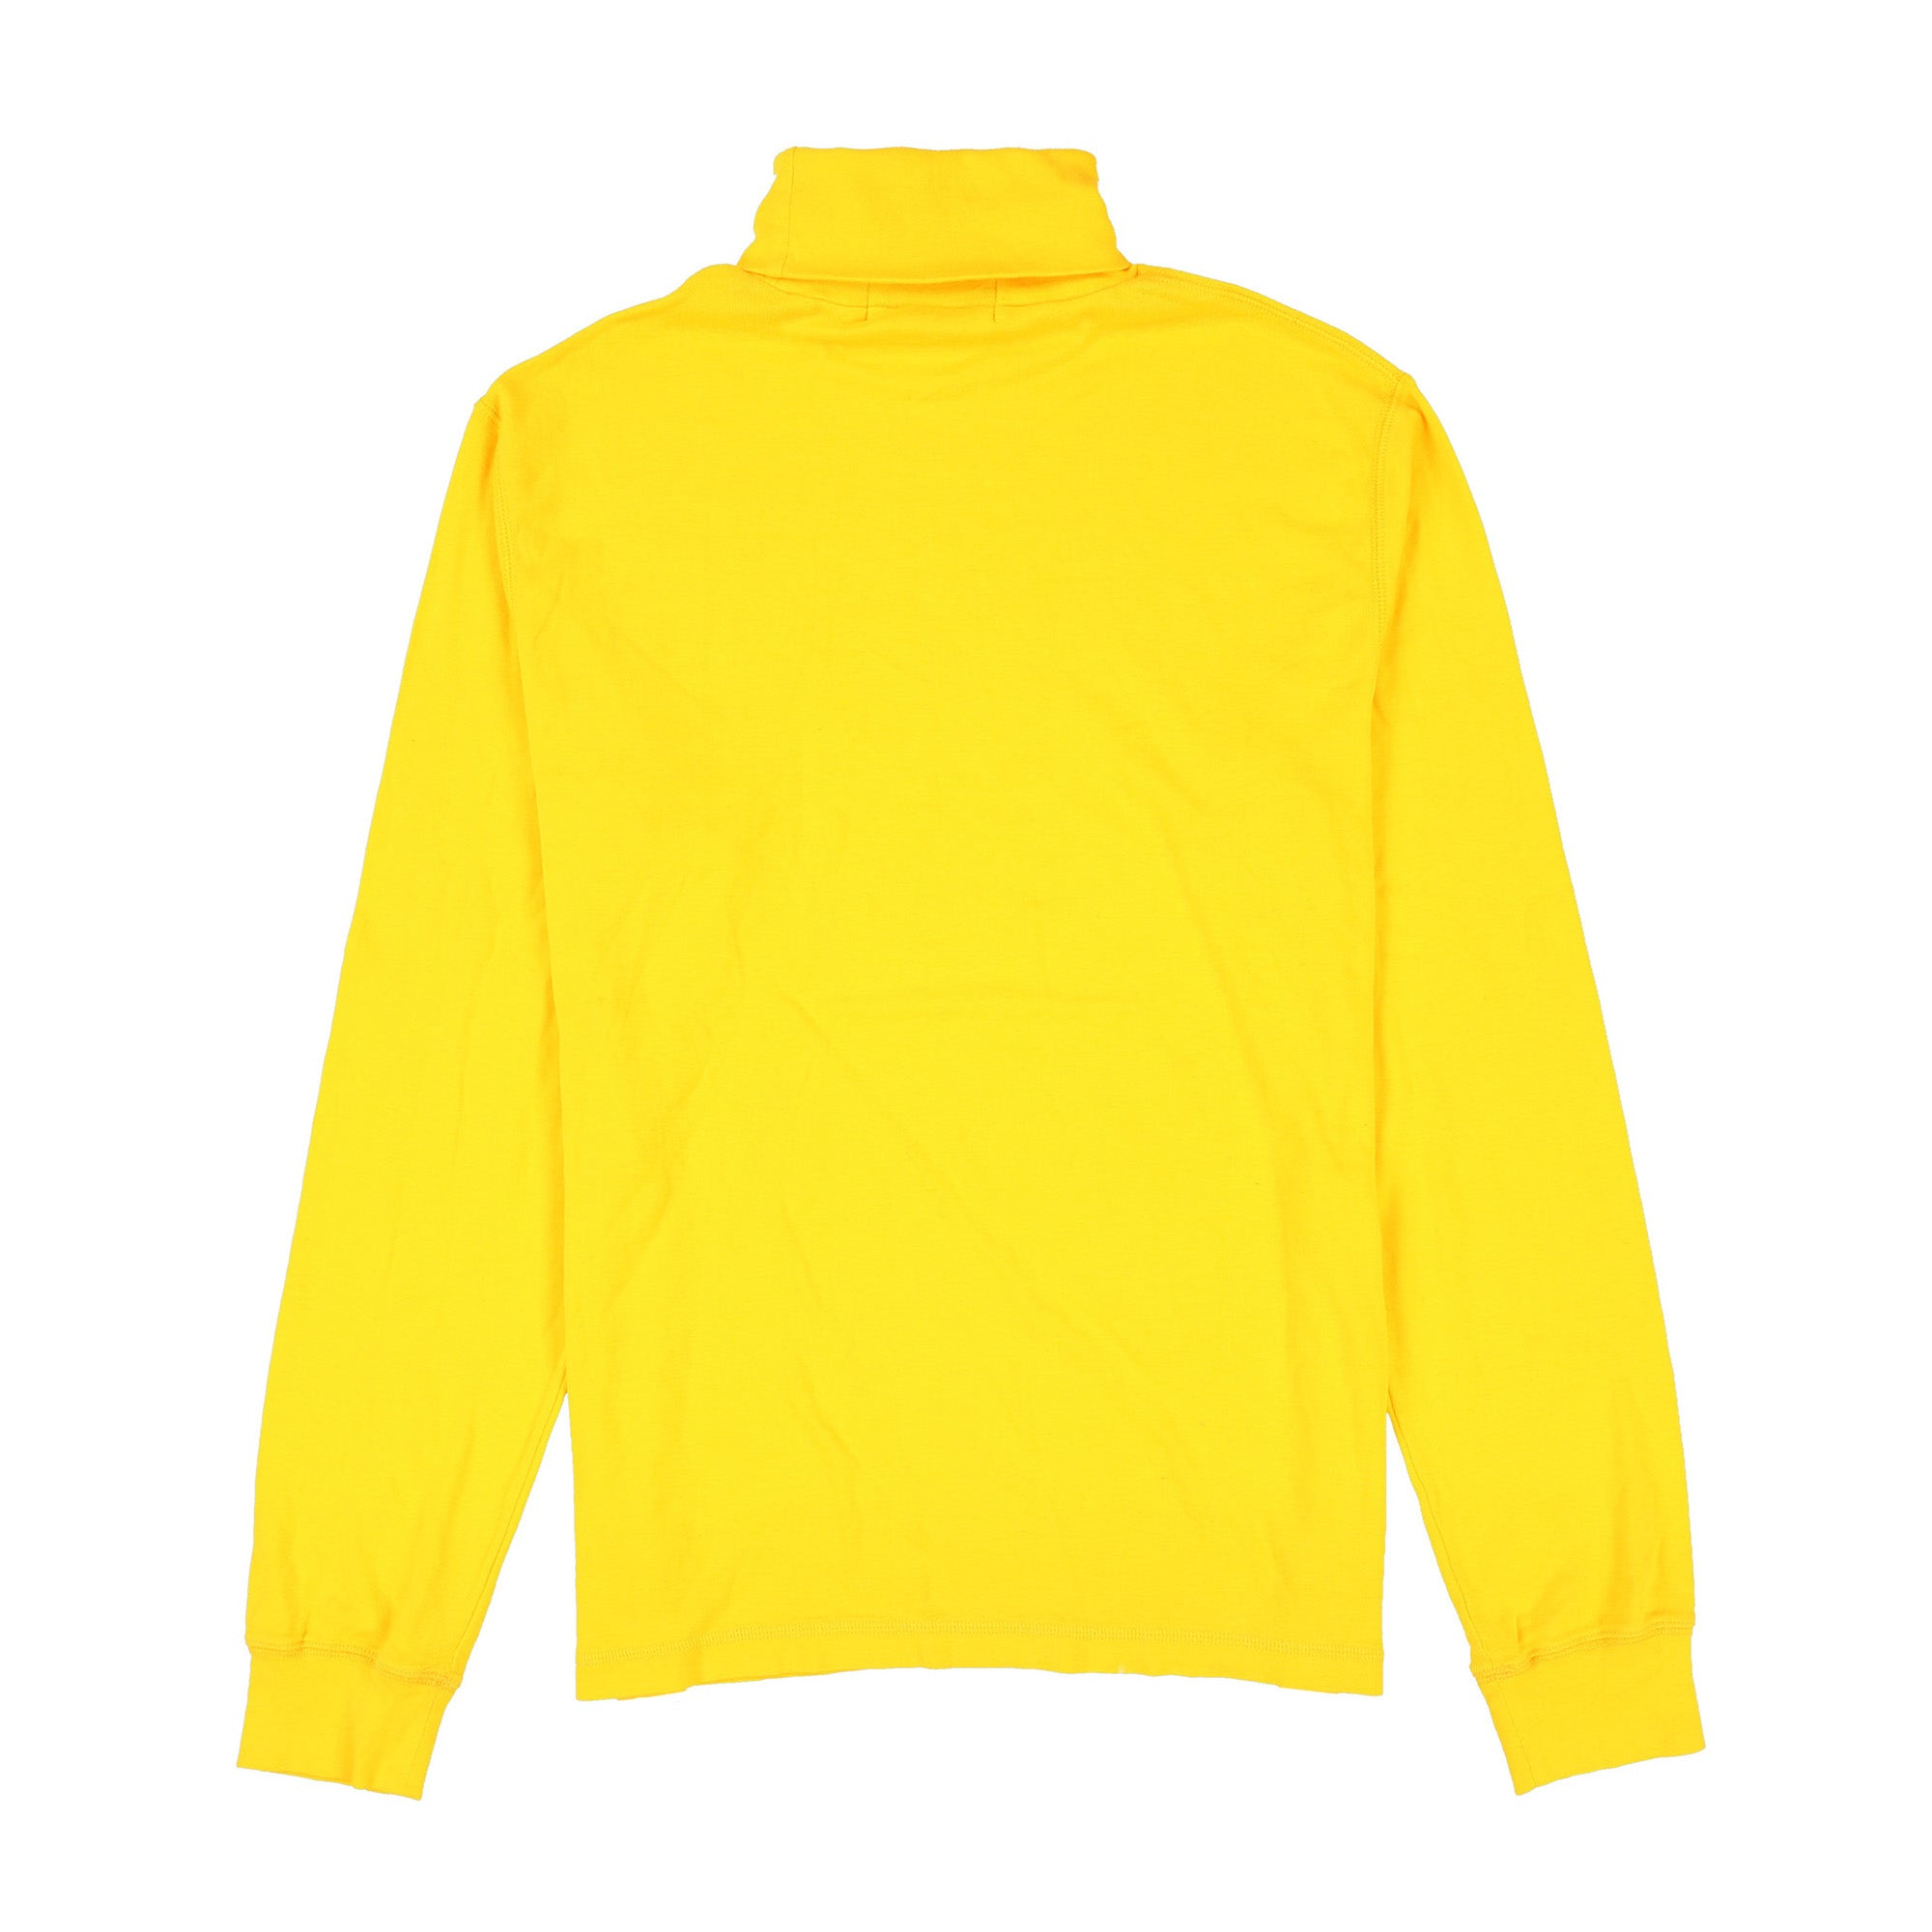 POLO SPORT NECK SPELL OUT SLD RIB TURTLENECK // YELLOW